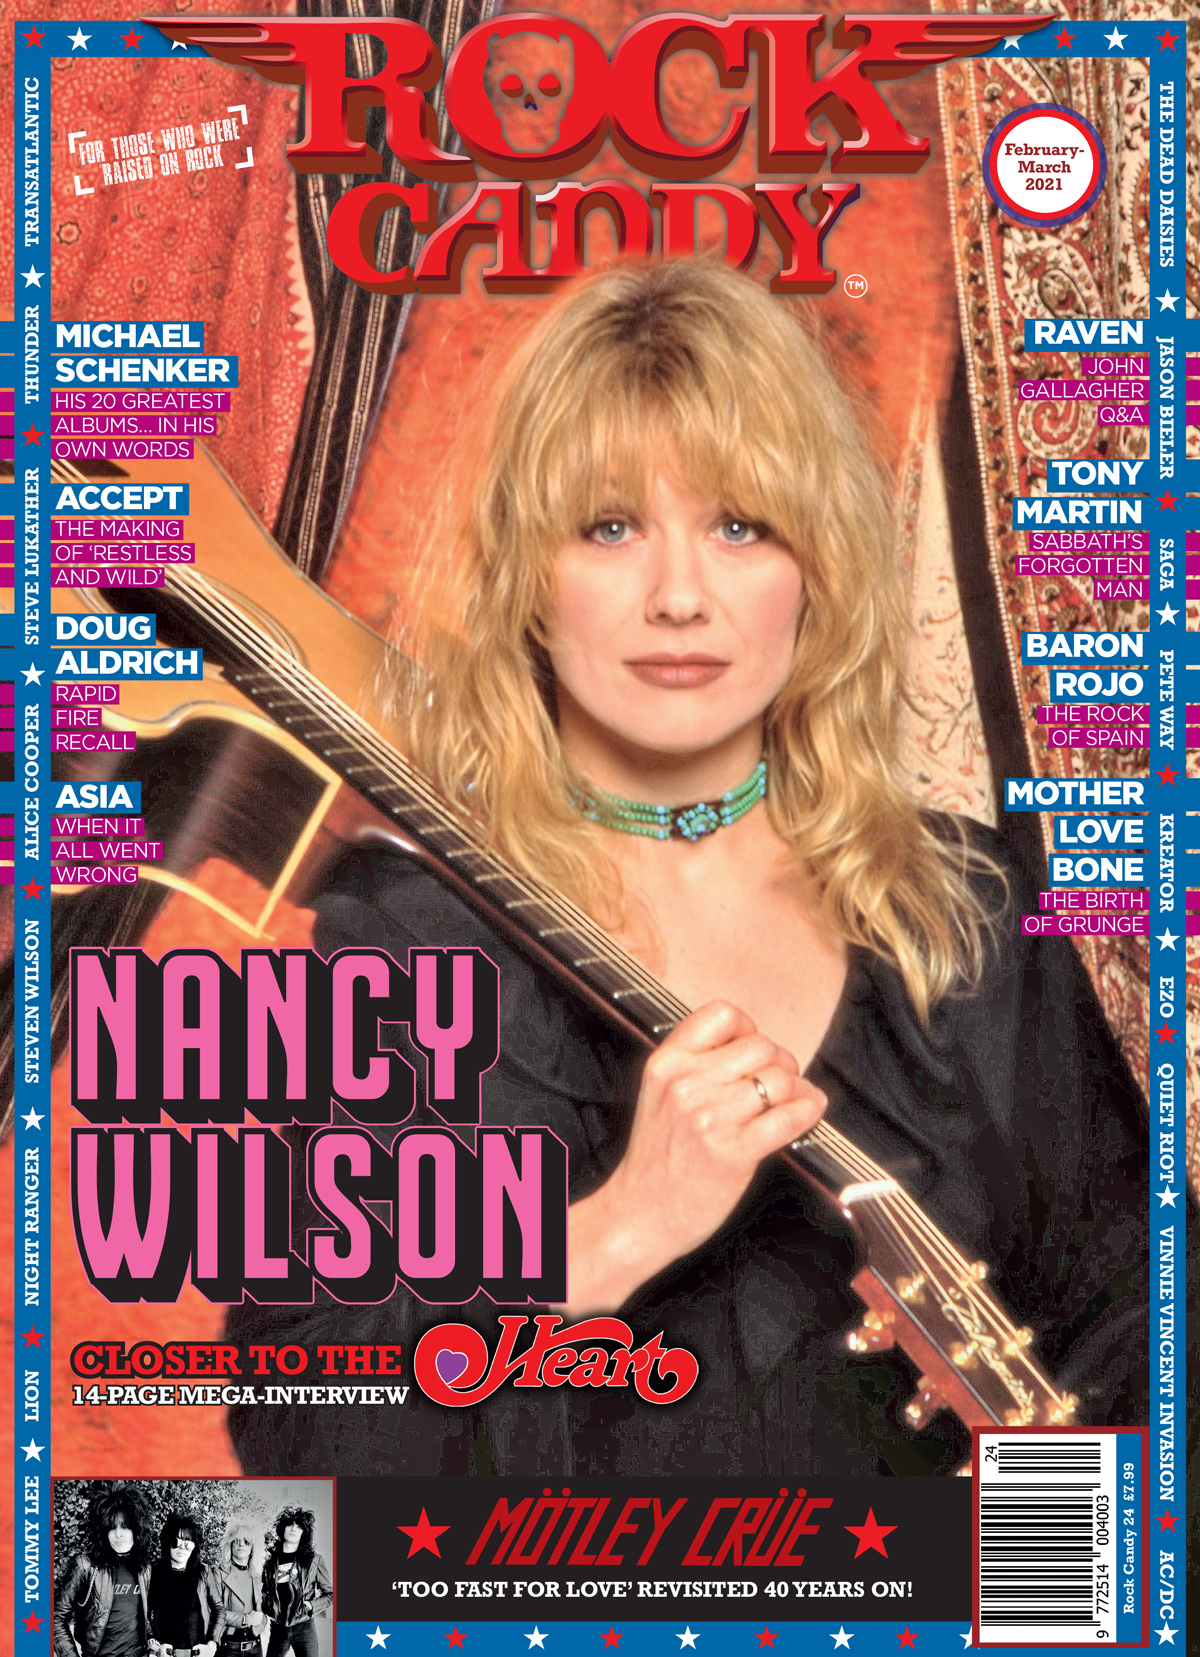 Issue 24 is available right now, featuring our 14-page cover story interview with Heart legend Nancy Wilson.